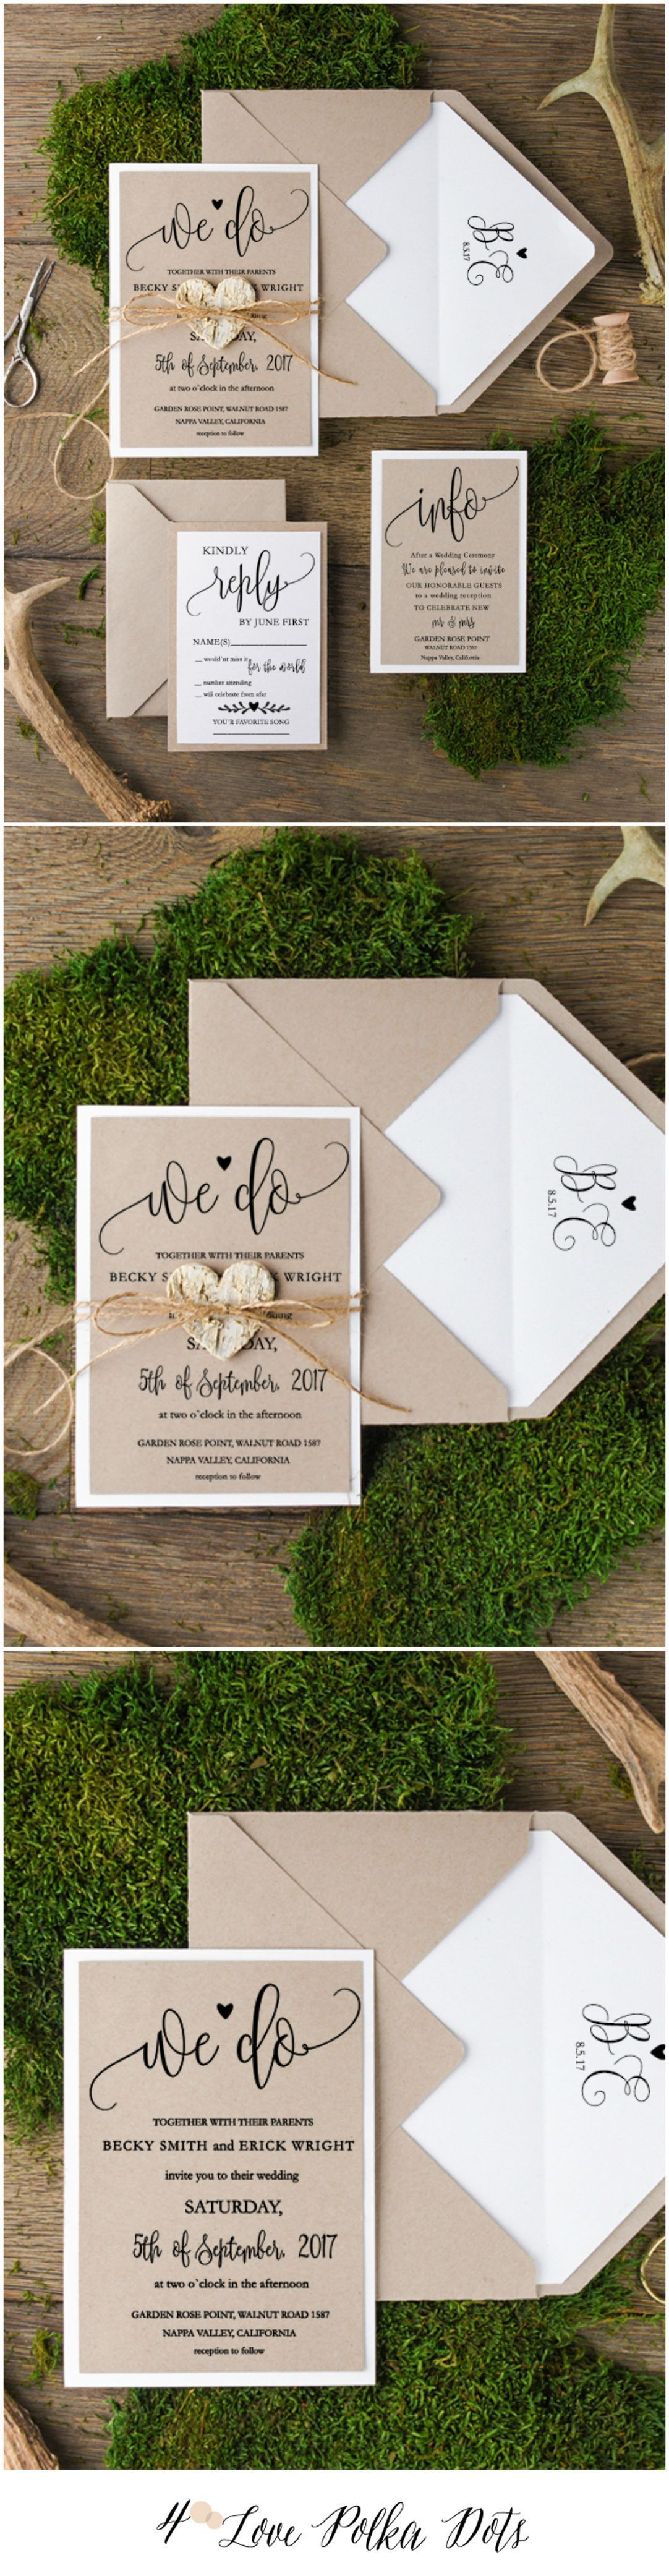 Eco Rustic Wedding Invitations #rusticwedding #countrywedding #dpf ...